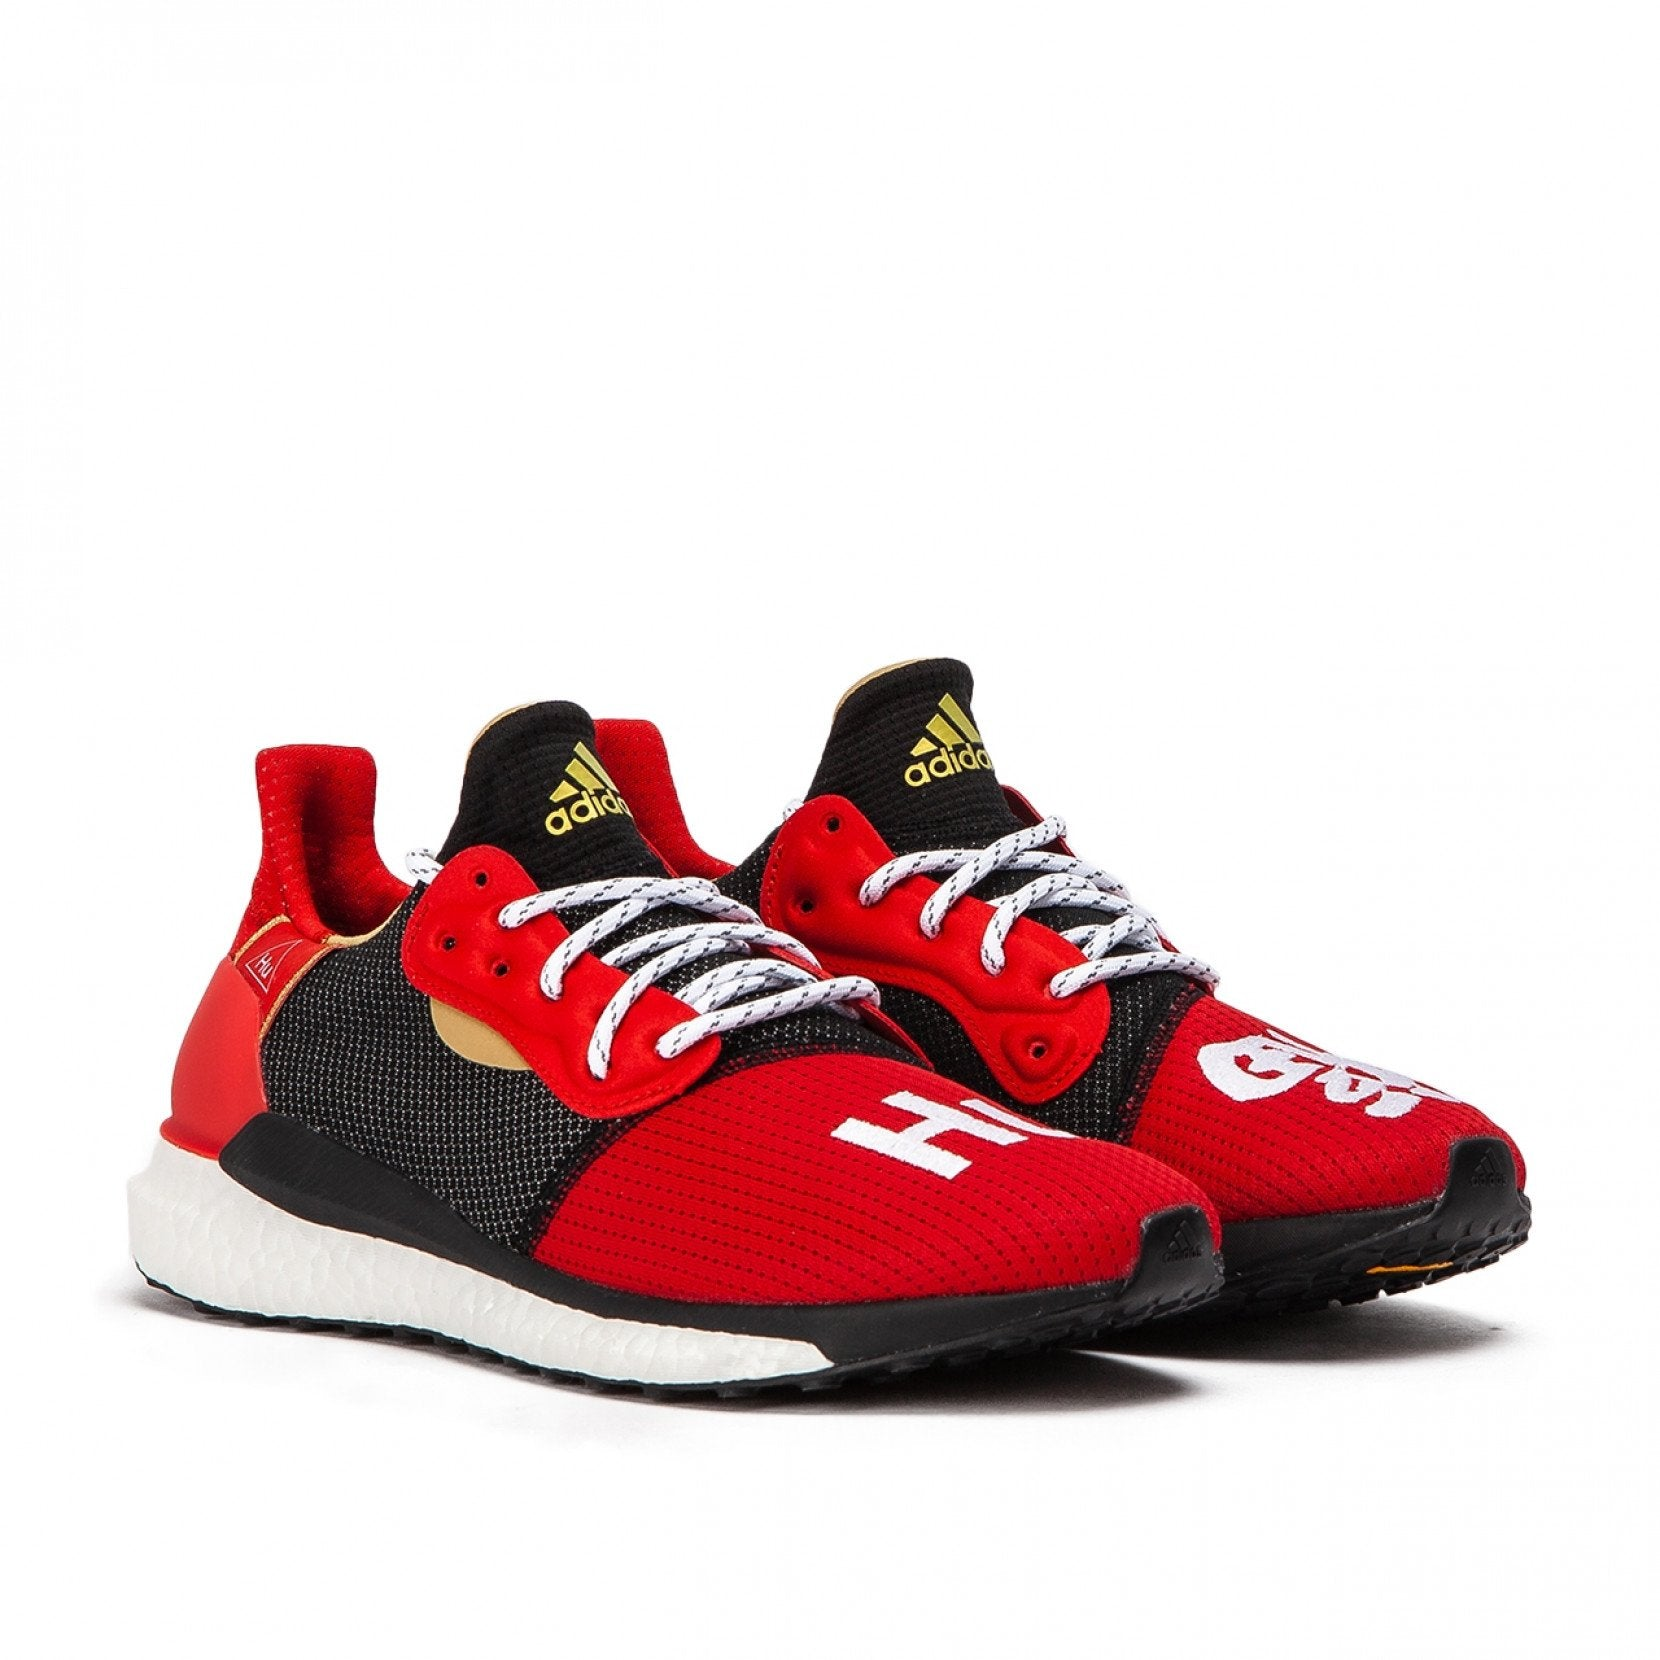 adidas x Pharrell Williams PW CNY Solar HU